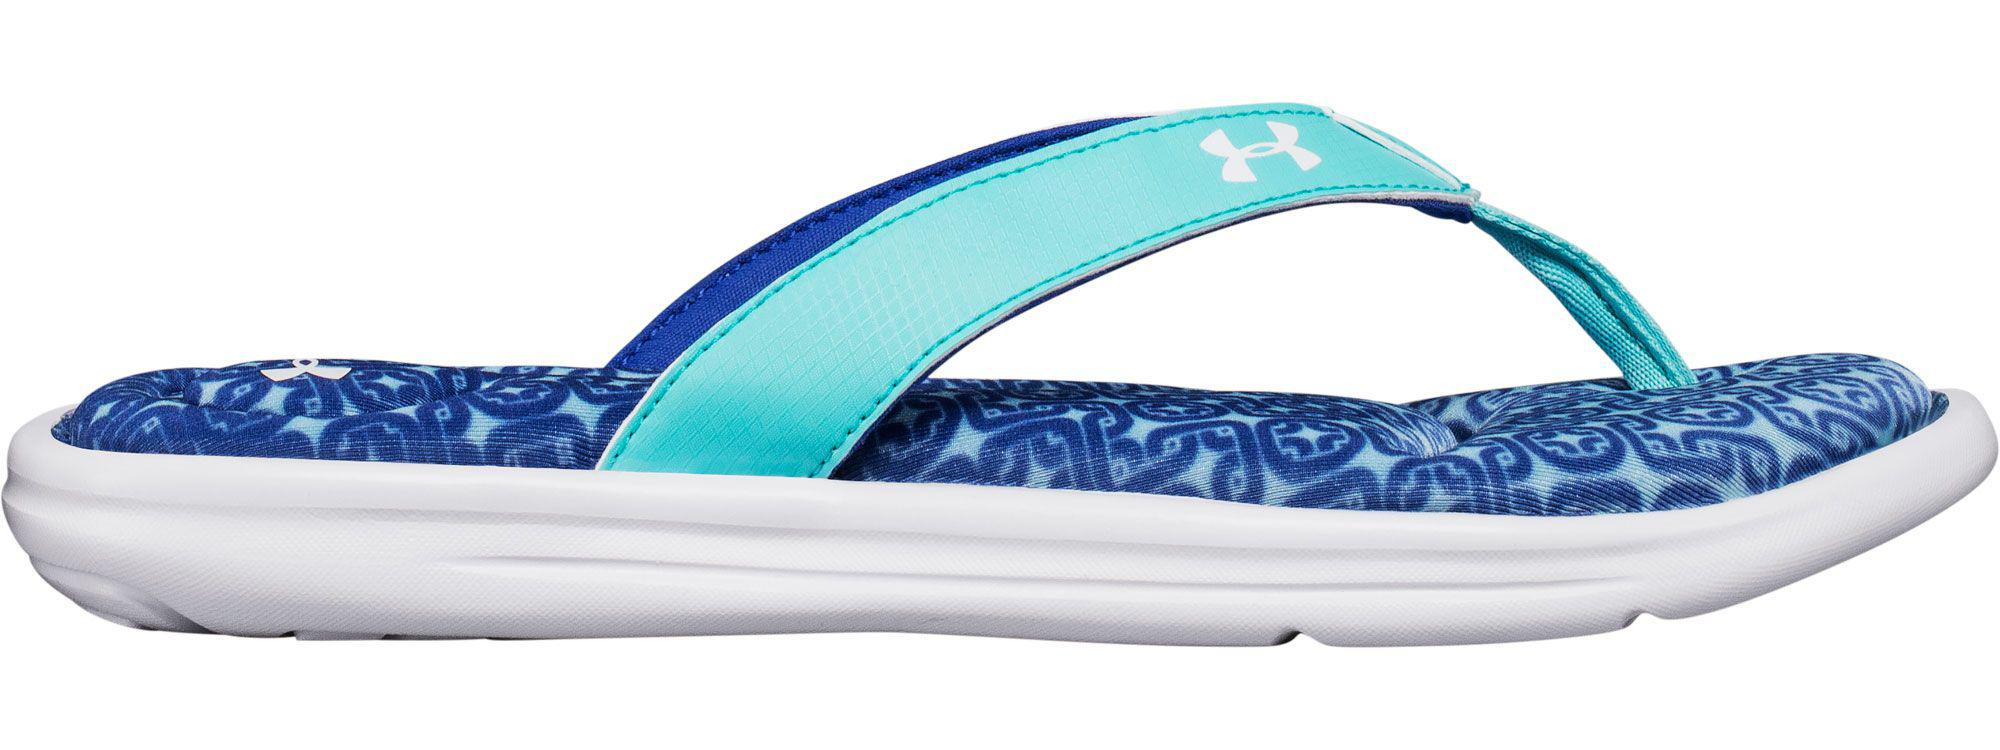 Under Armour Women's Marbella Oval VI Thong Slip-On Sandals kFVyjr7W